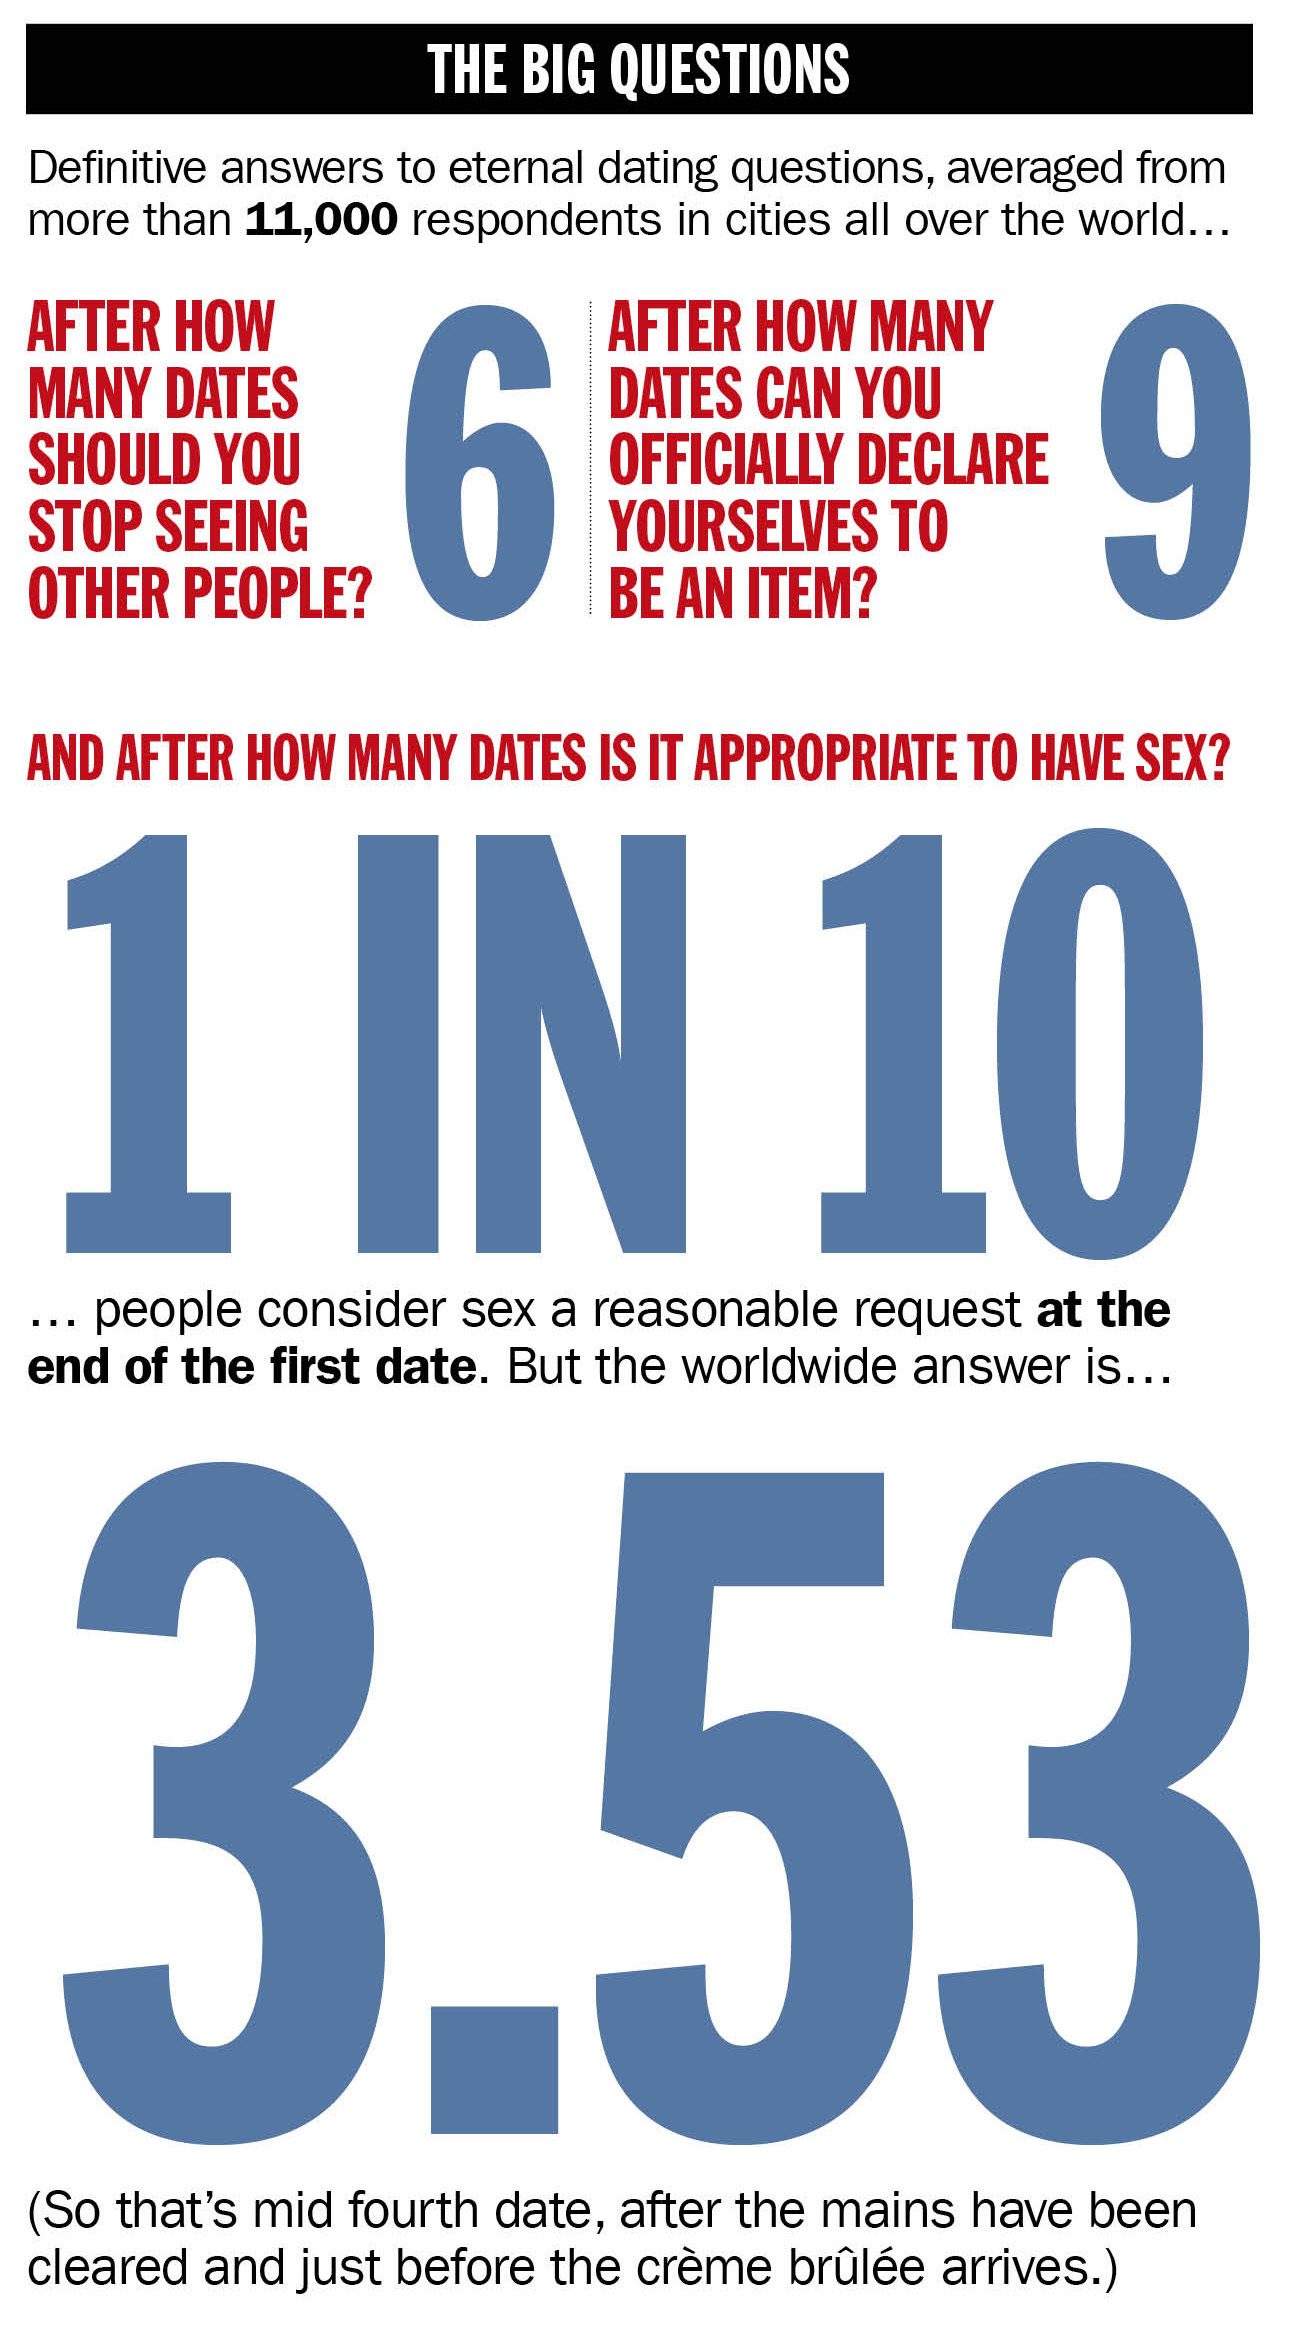 the timeout global dating survey